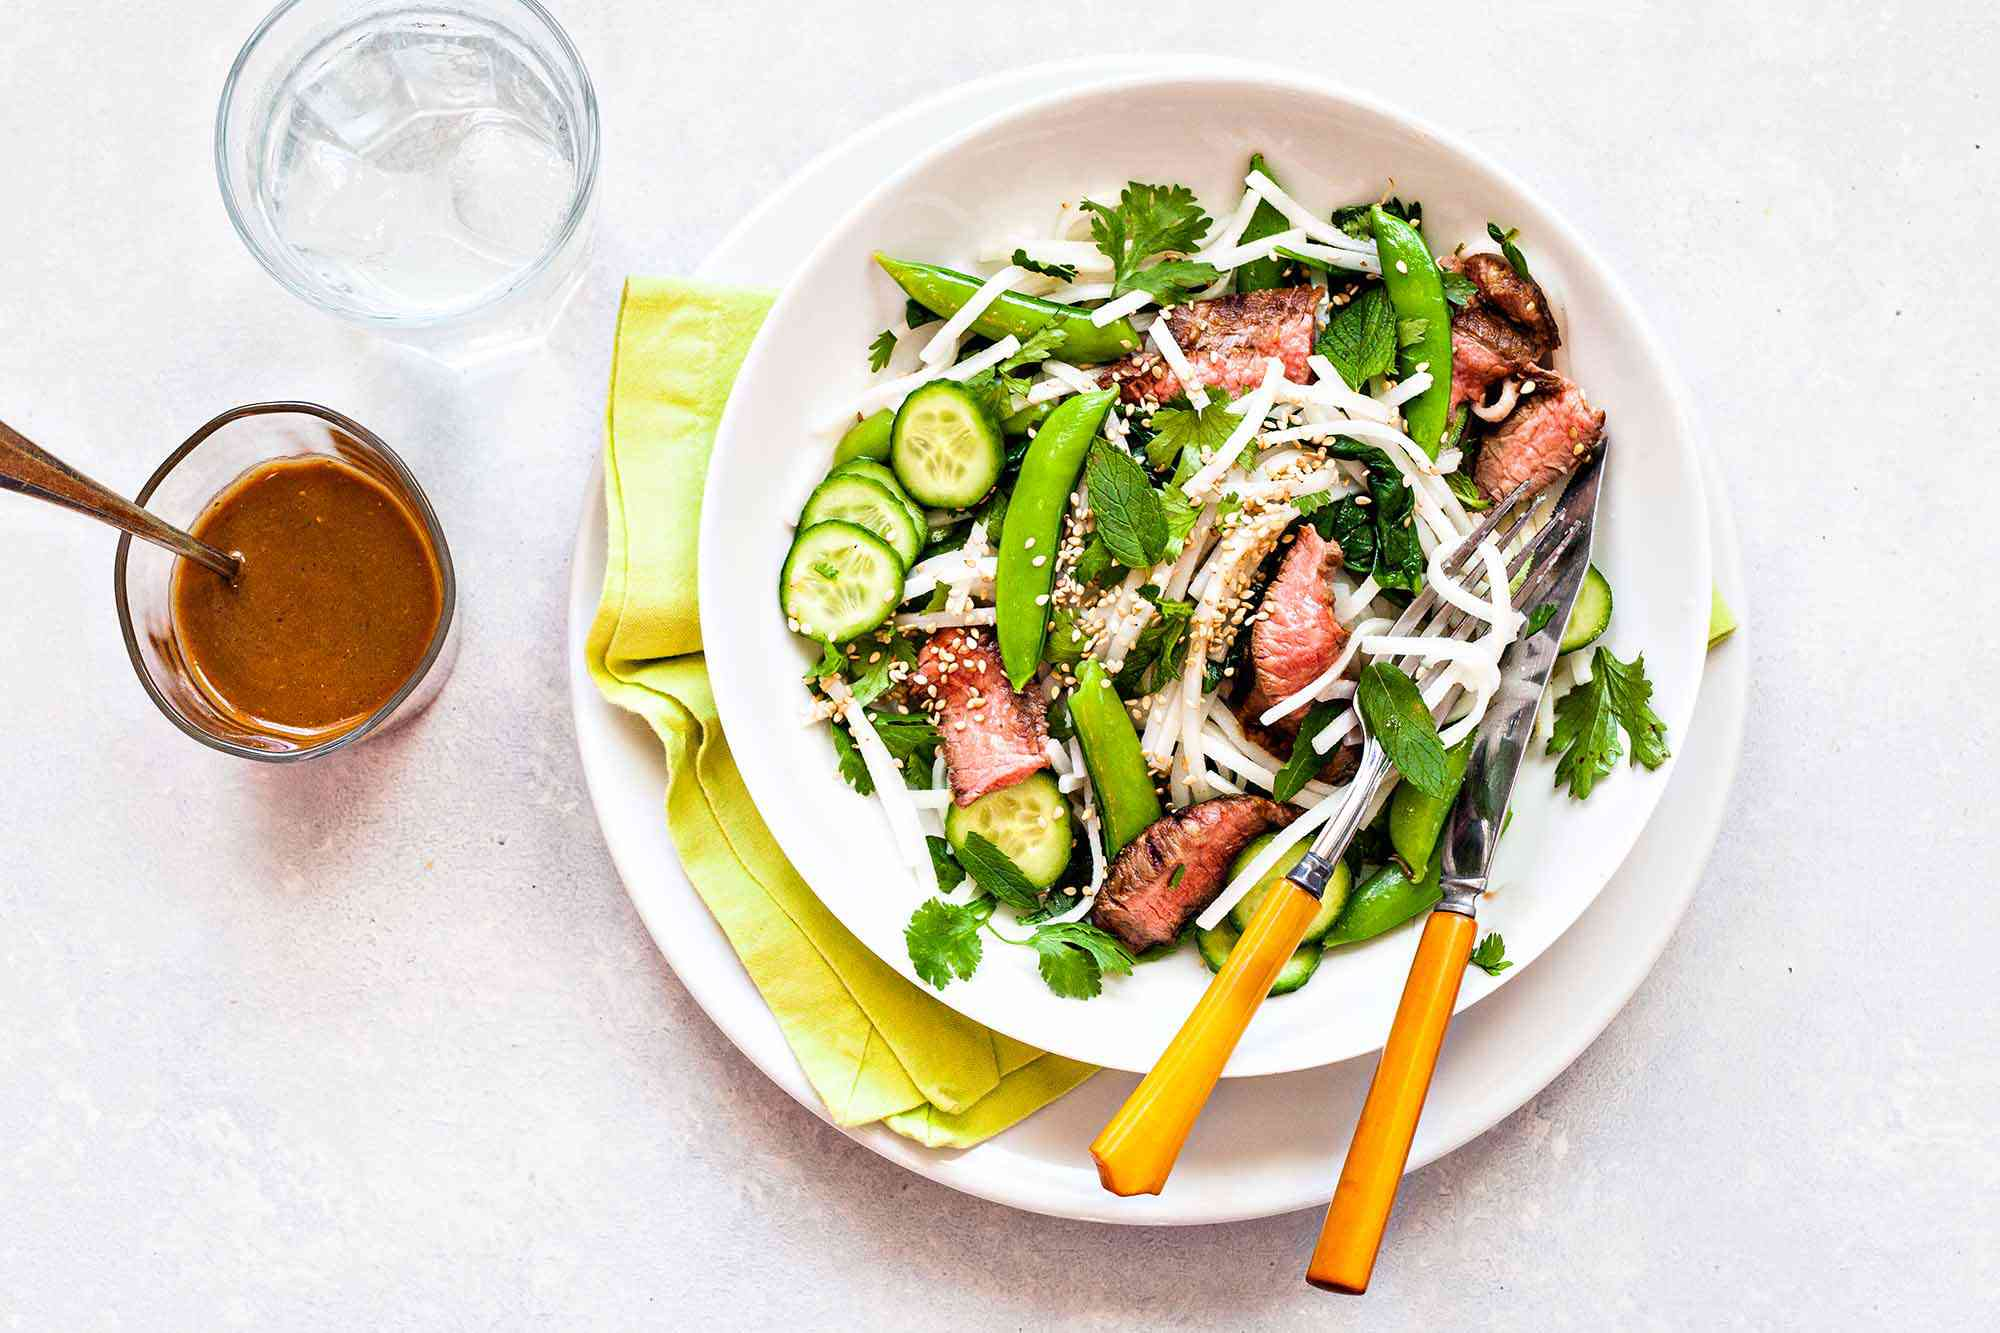 Noodles with Steak, Vegetables and Lime Dressing - noodle salad with beef and vegtables in a white bowl